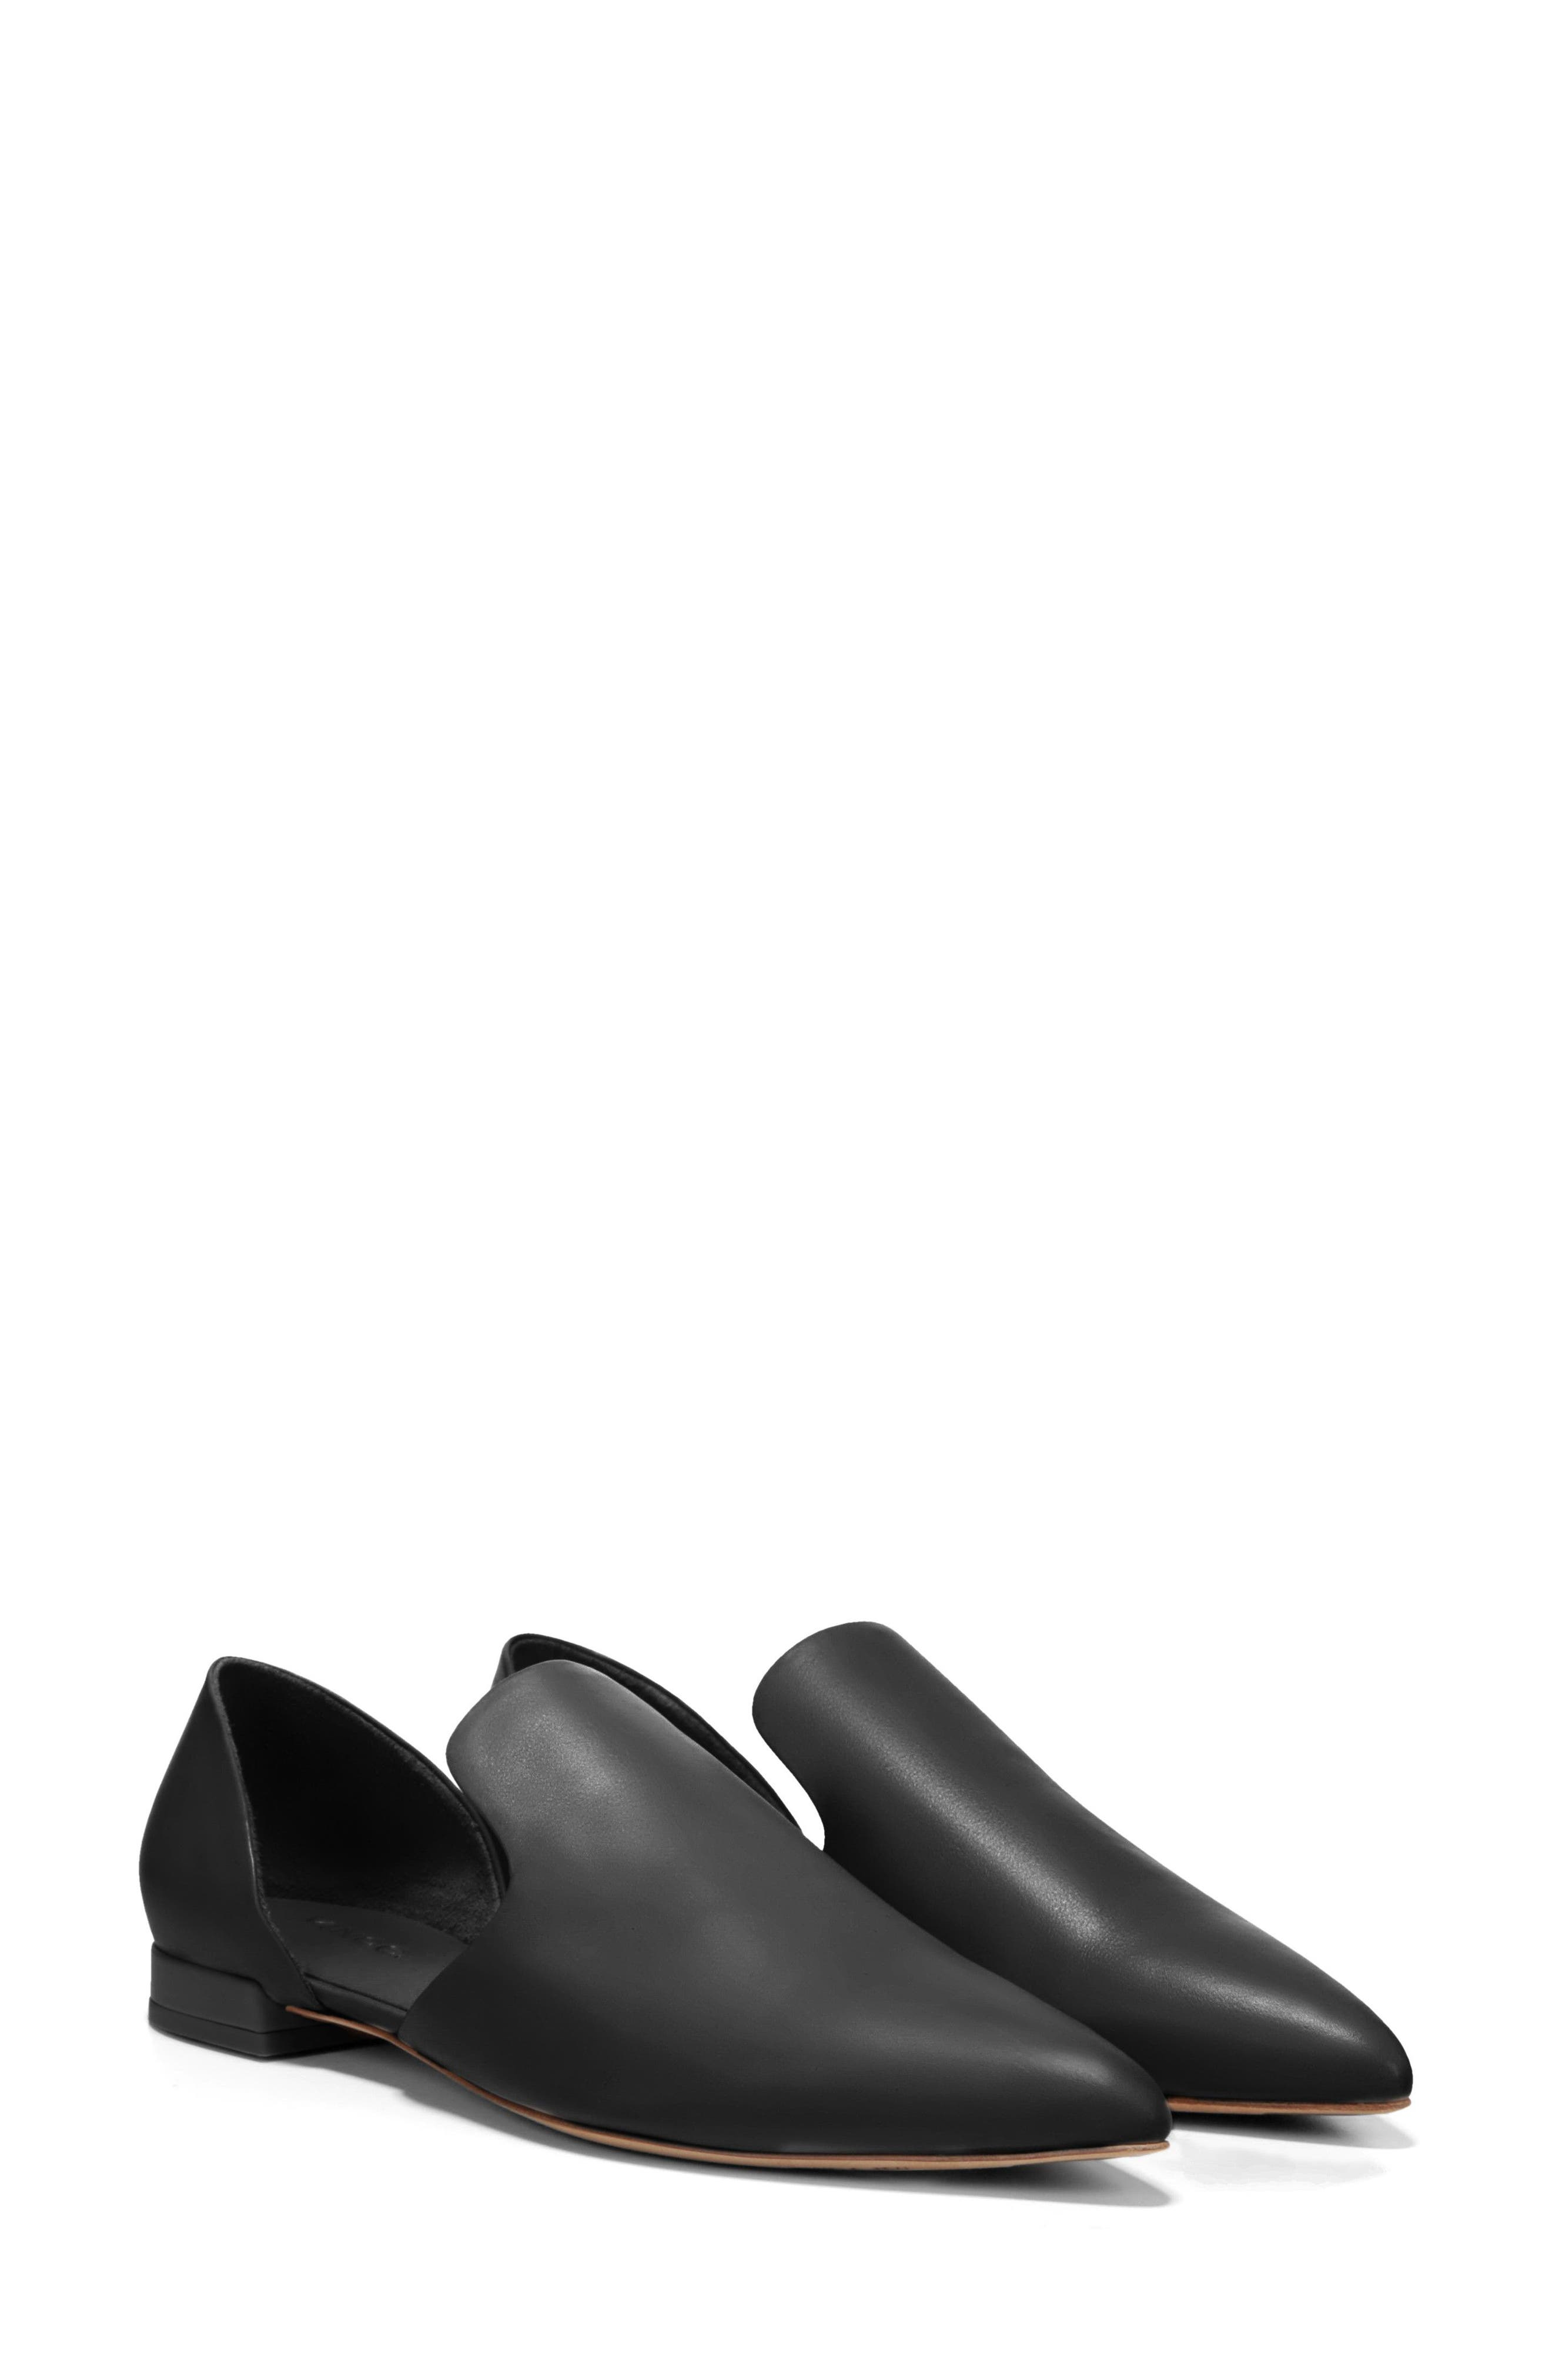 Damris d'Orsay Loafer,                             Alternate thumbnail 6, color,                             BLACK SIVIGLIA CALF